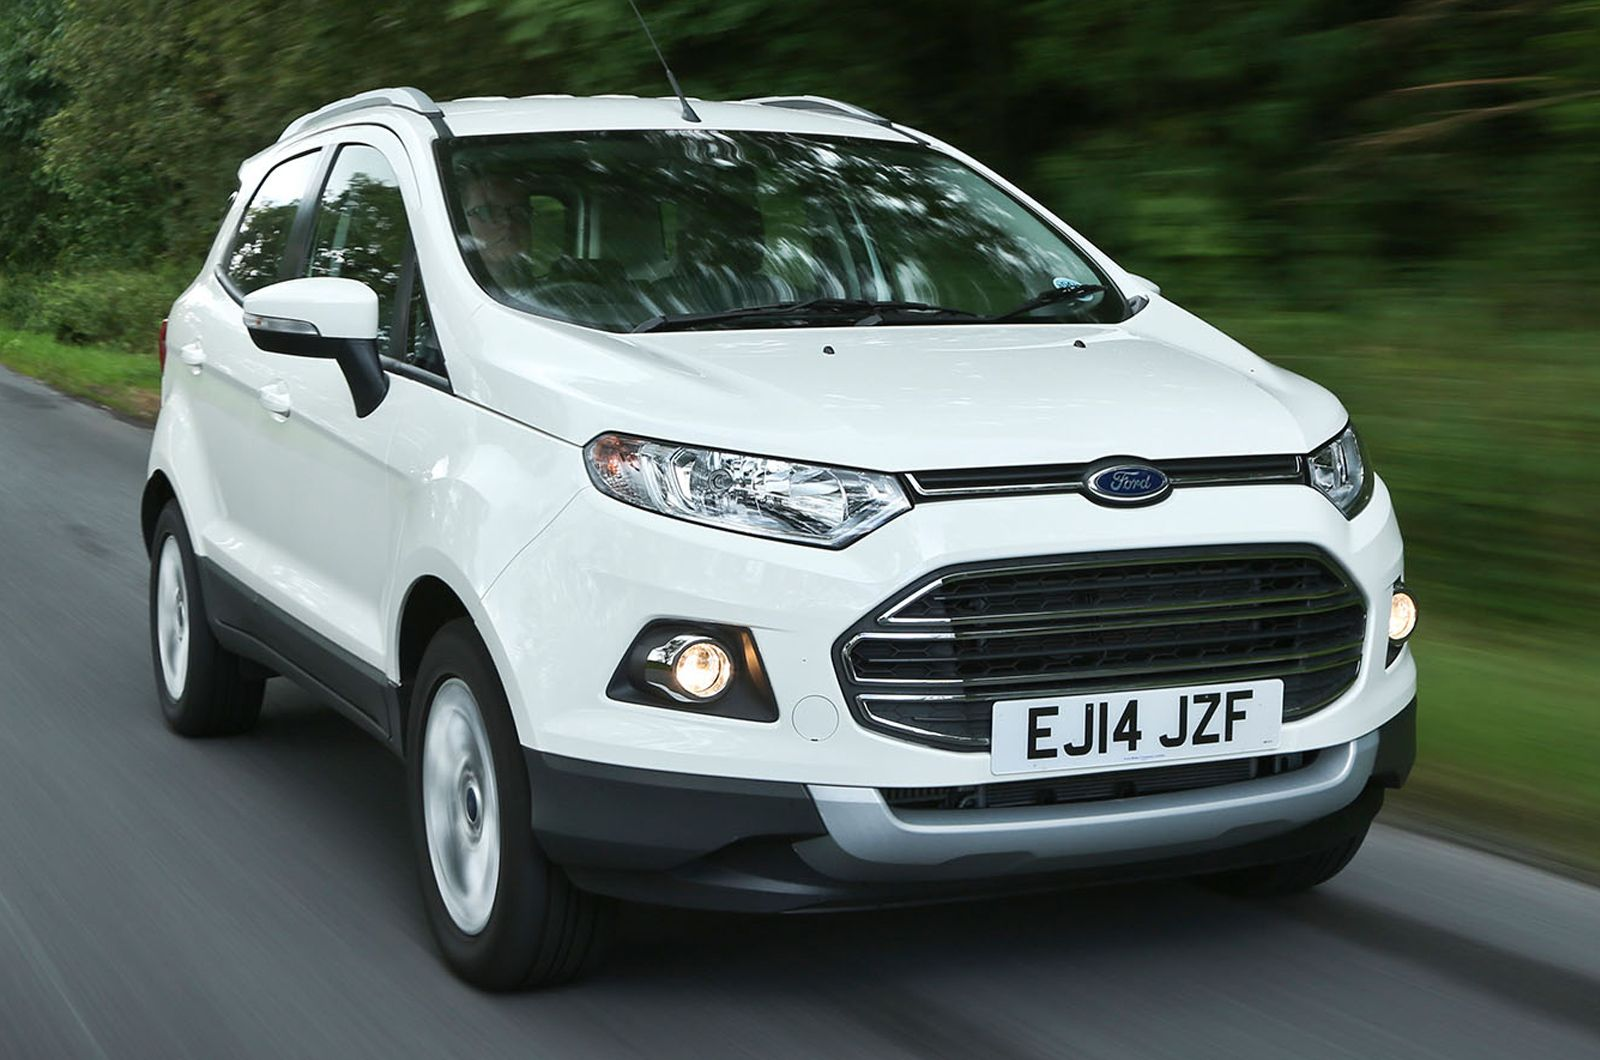 White Ford Ecosport Hd Wallpapers Ford Ecosport Ford